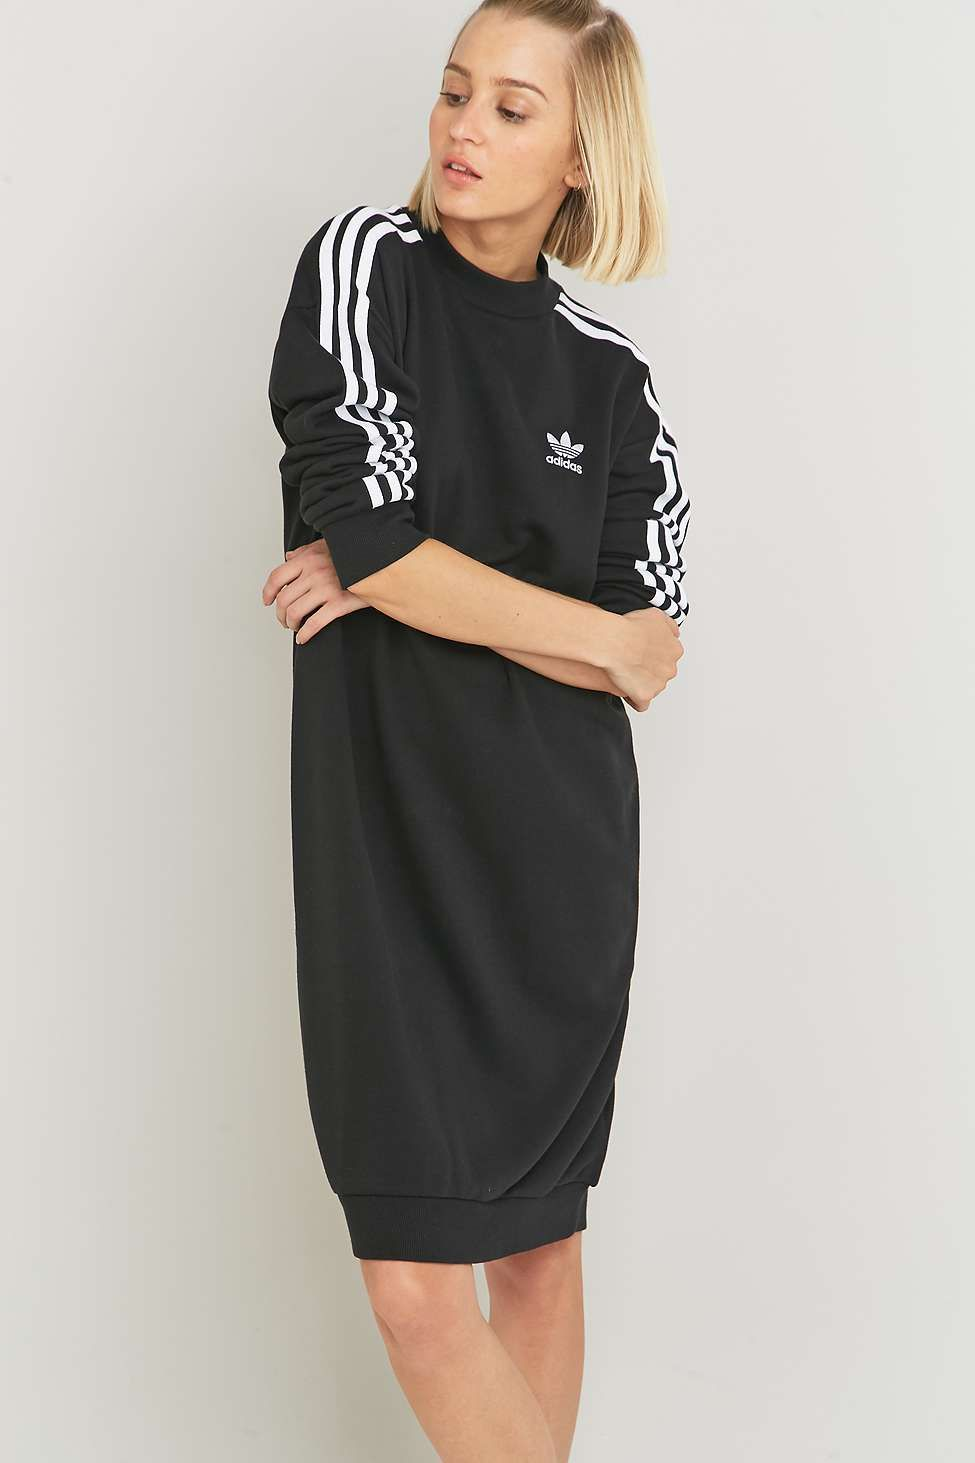 Black Originals Dress Winter Herfst 3 Adidas Stripe Midi ATqtwUAZx